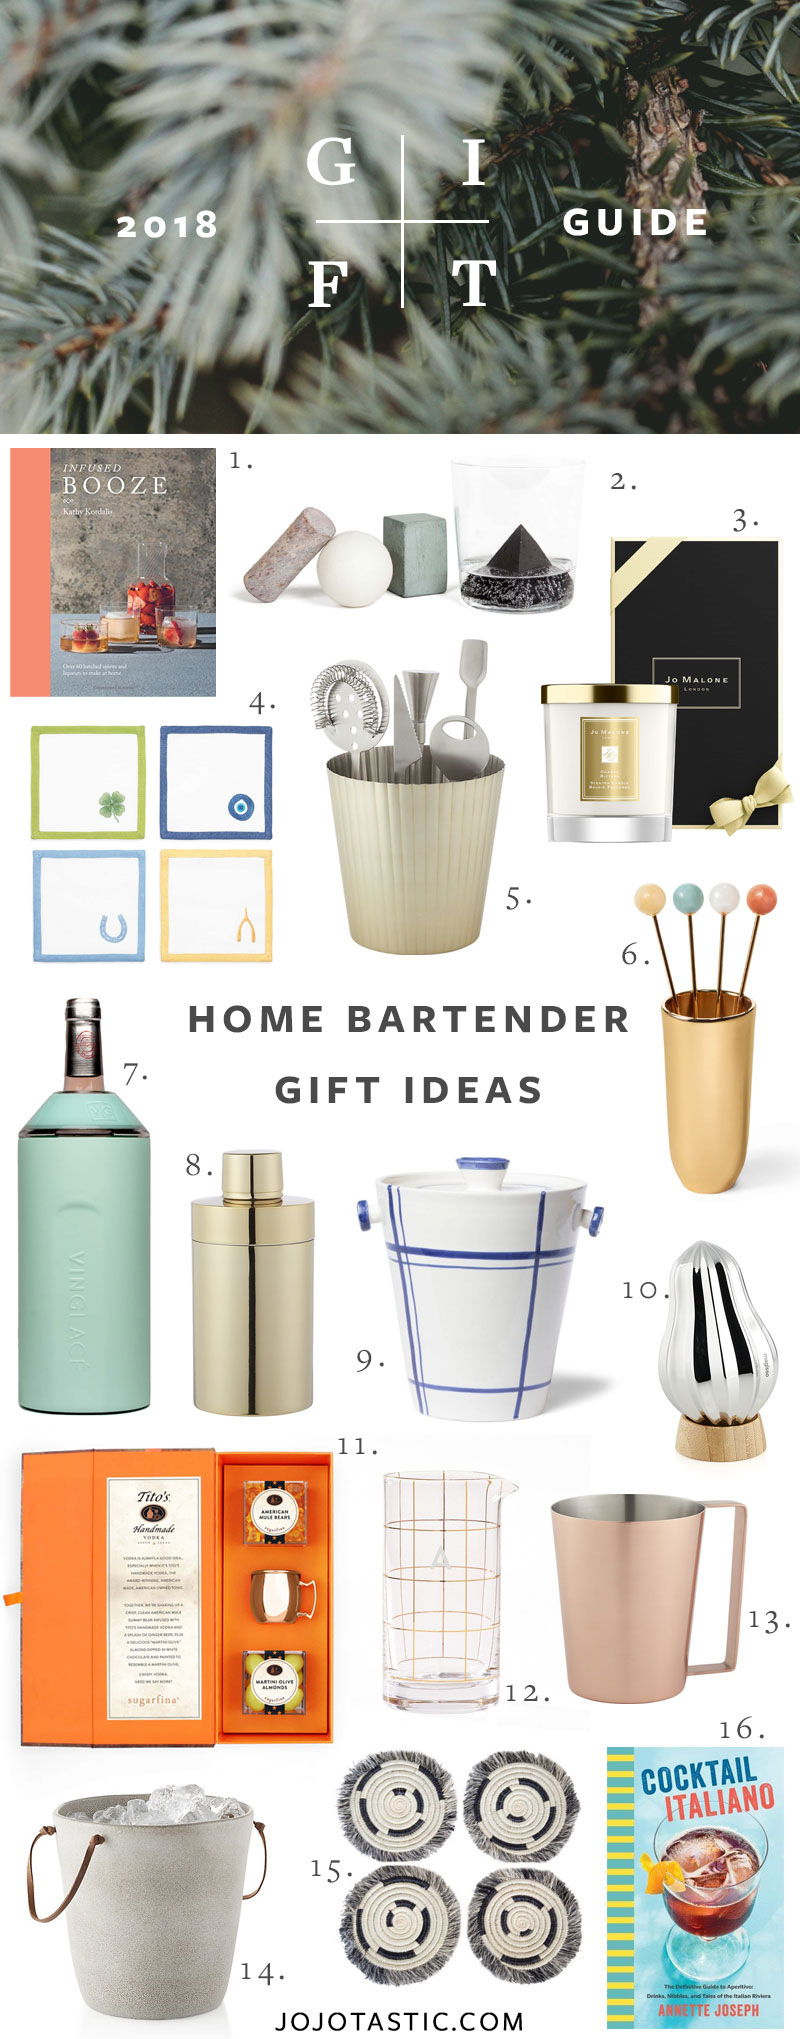 Home Bartender and Cocktail Enthusiast Gift Ideas, Gift Guide for Christmas & Holidays 2018 via jojotastic.com #giftguide #giftidea #giftgiving #gifts #presents #christmaspresents #christmasgiftideas #christmasgift #cocktails #bartender #homebartender #cocktailenthusiast